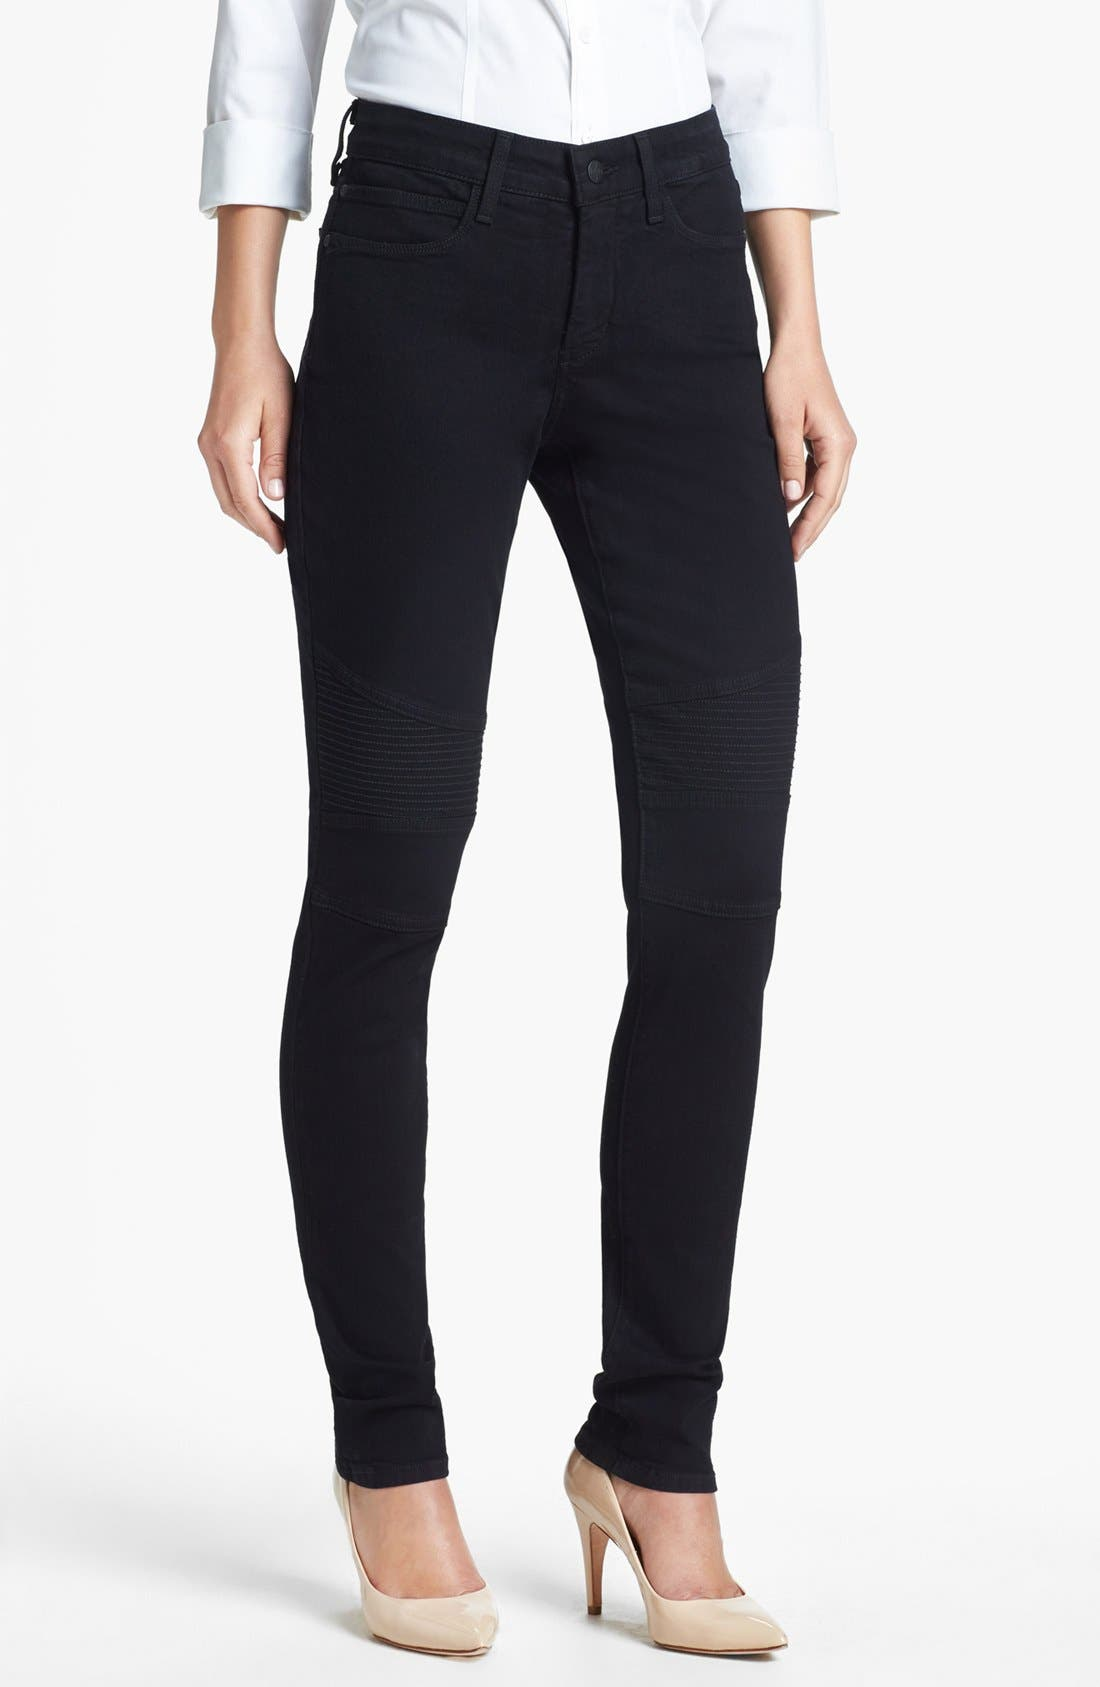 Alternate Image 1 Selected - NYDJ Gabriella' Stretch Moto Skinny Jeans (Black)